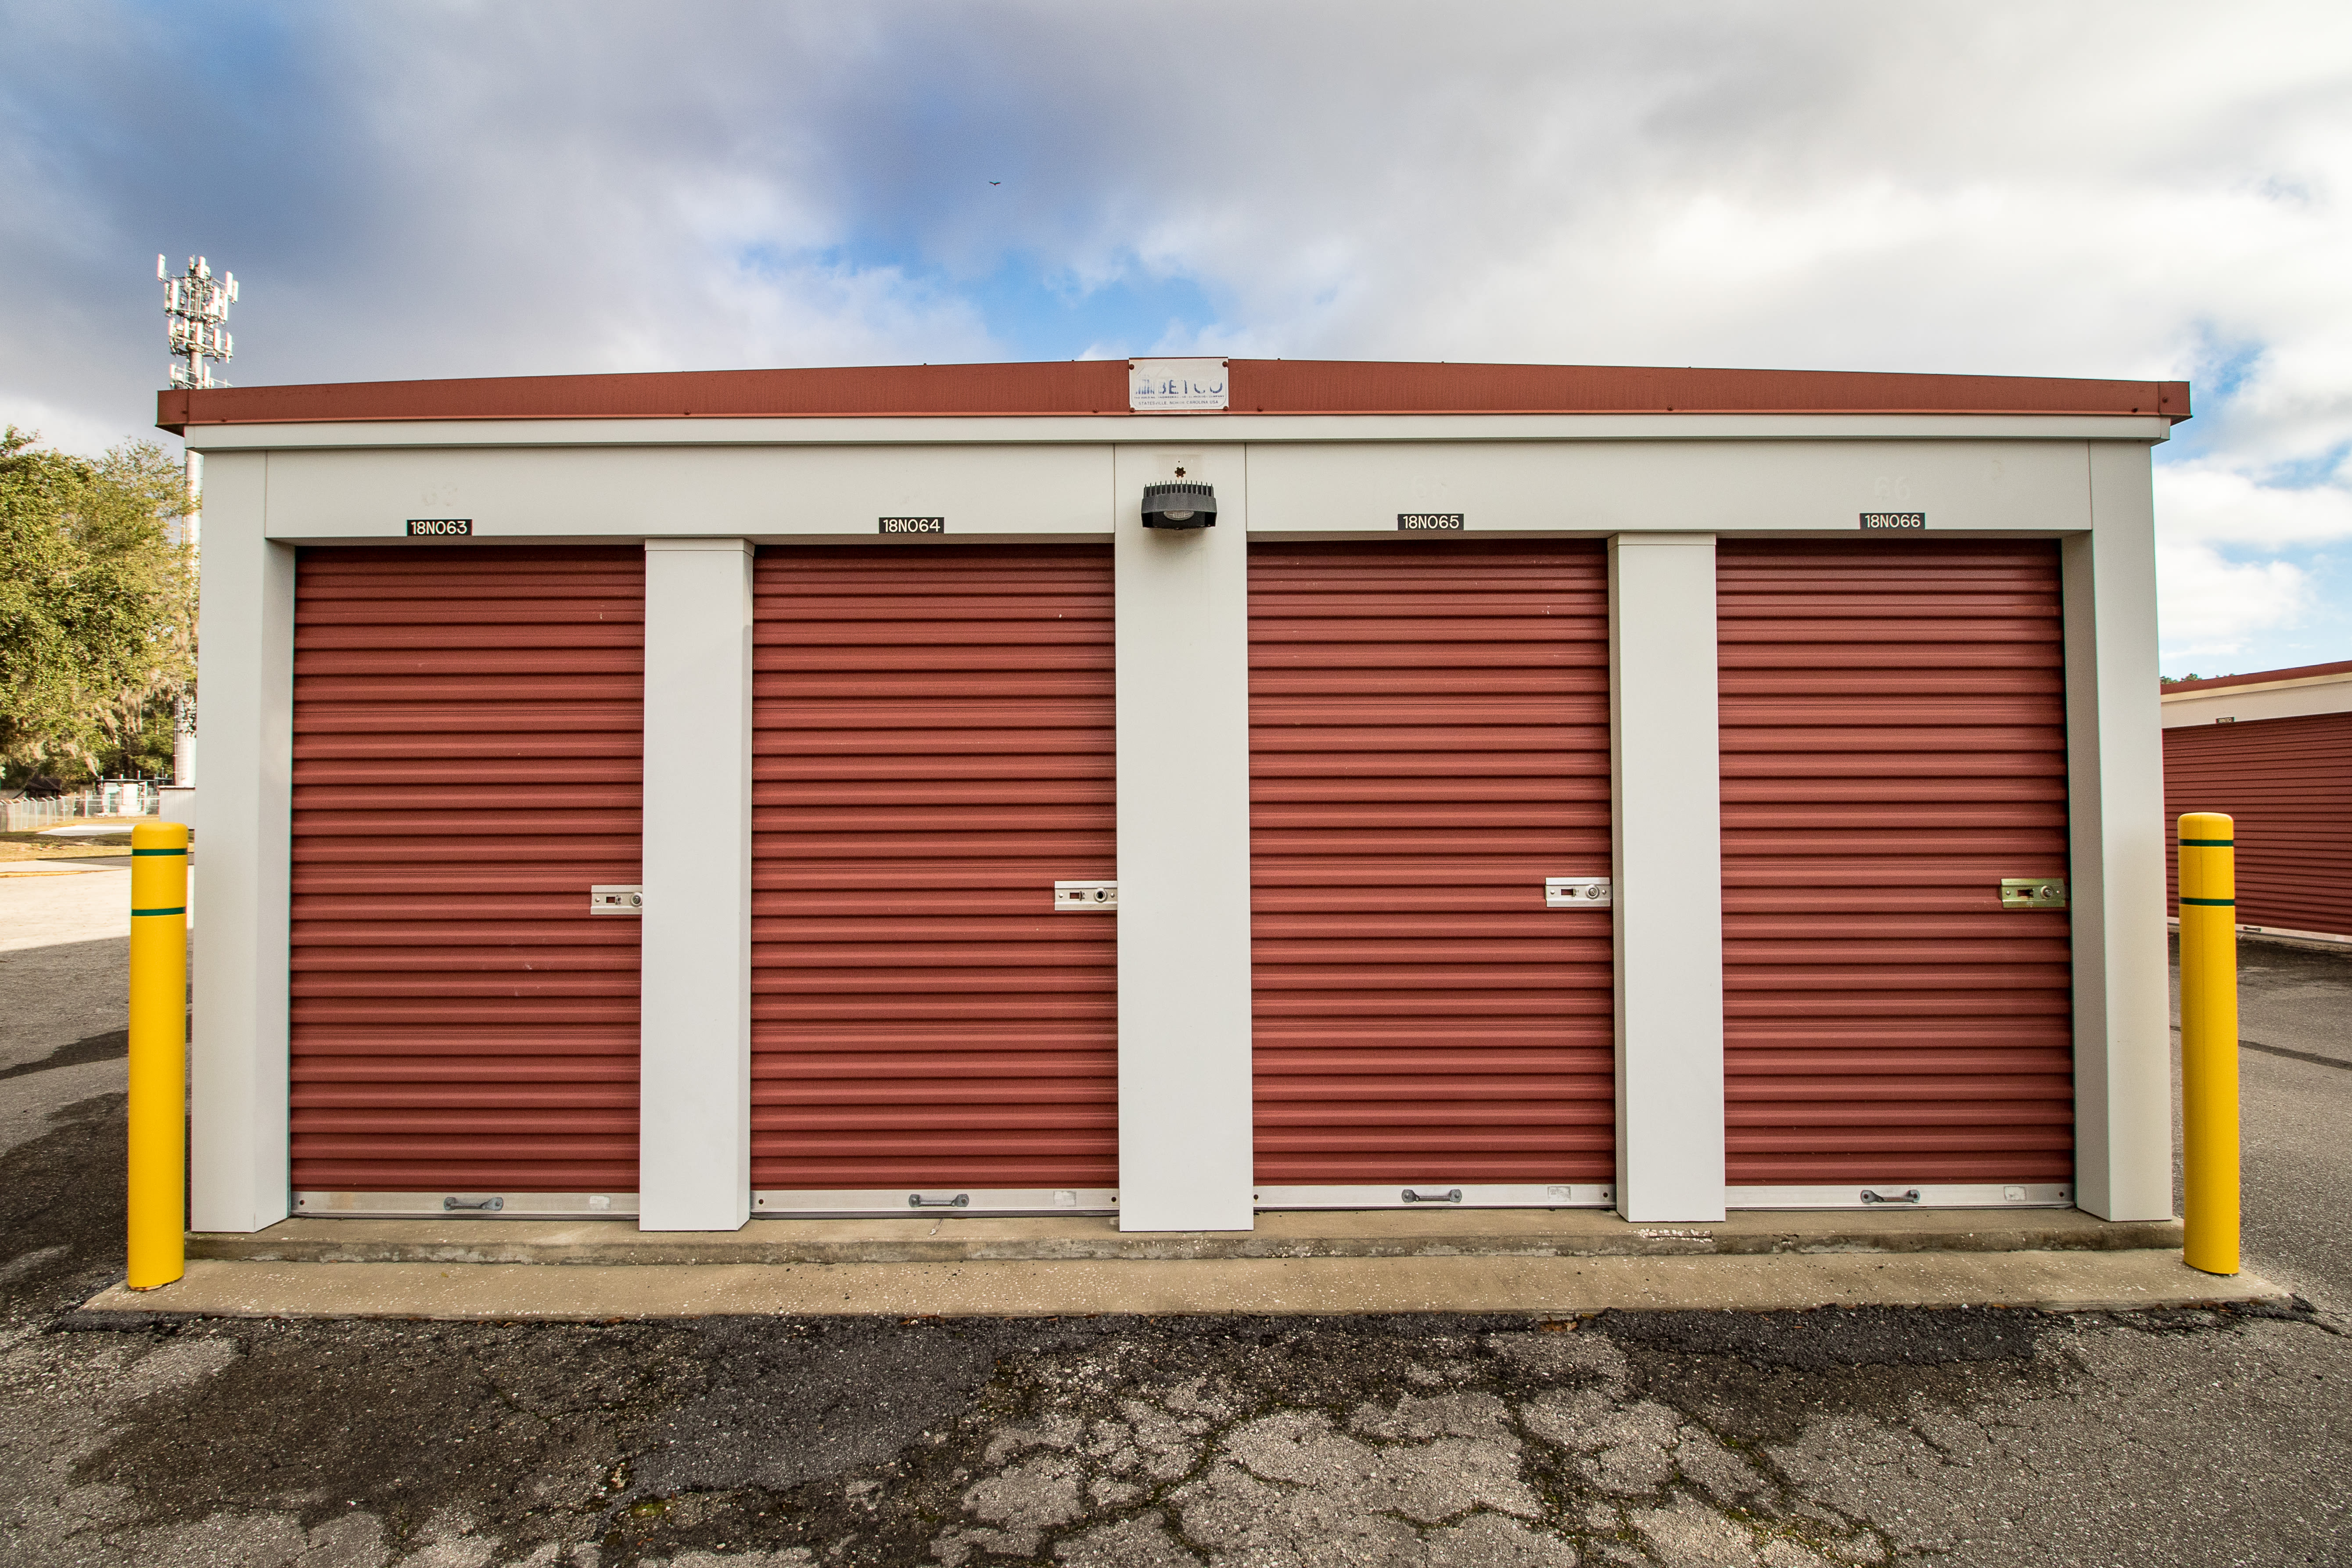 Neighborhood Storage exterior storage units in Ocala